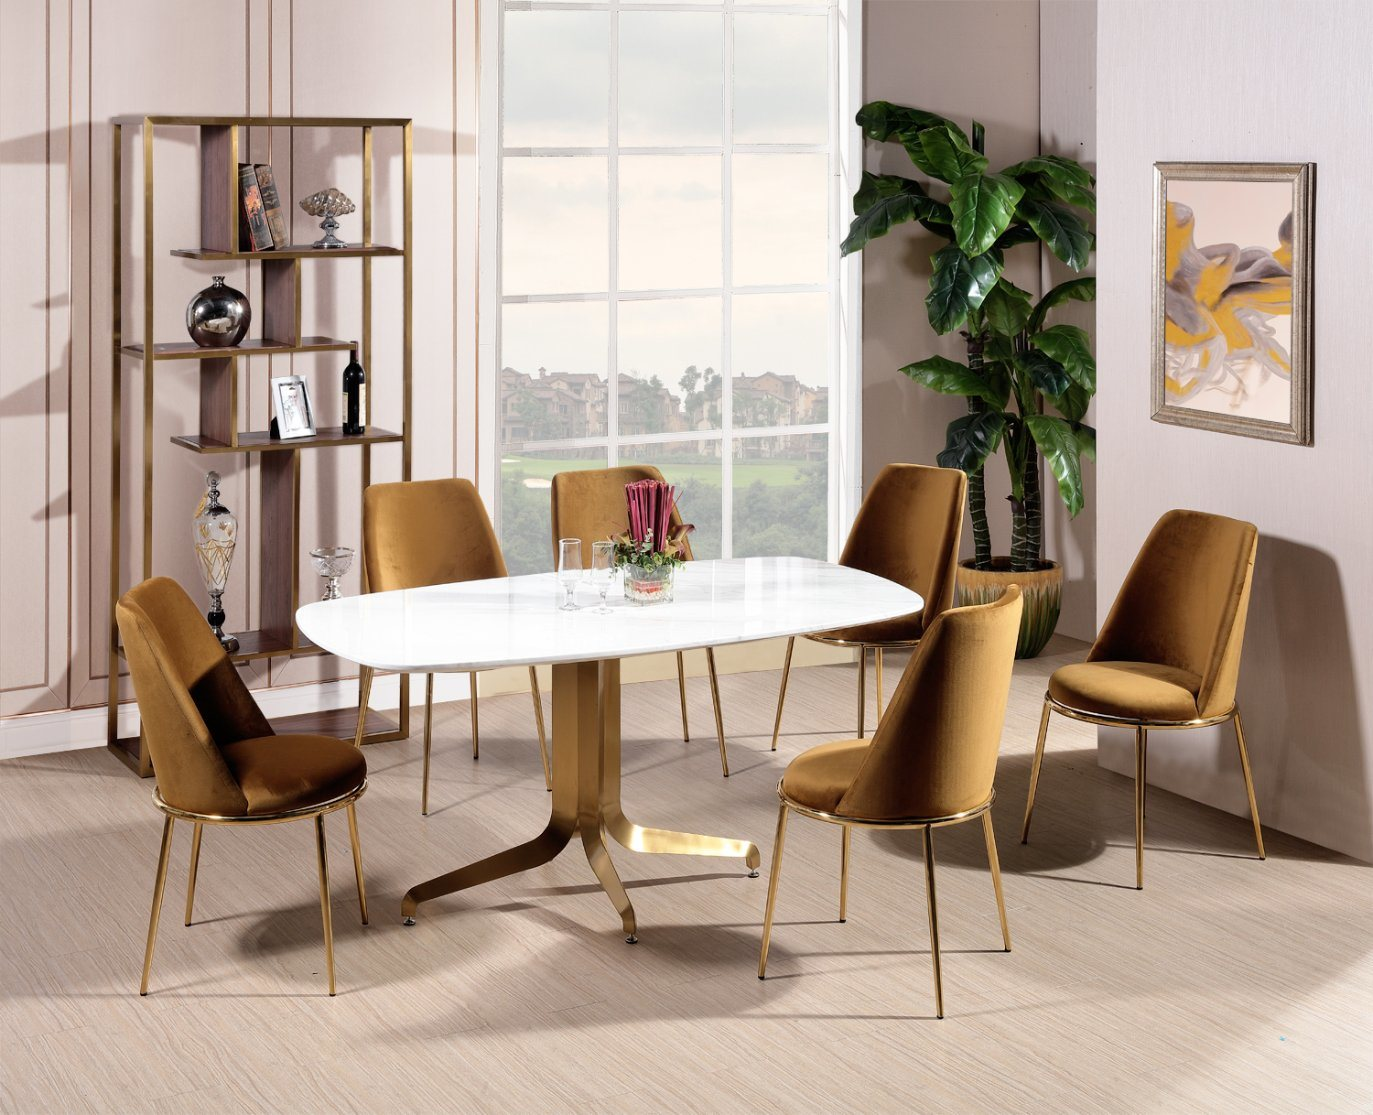 China Stainless Steel Leg Comfortable Dining Chair In Gold Velvet Fabric China Home Furniture Dining Chair